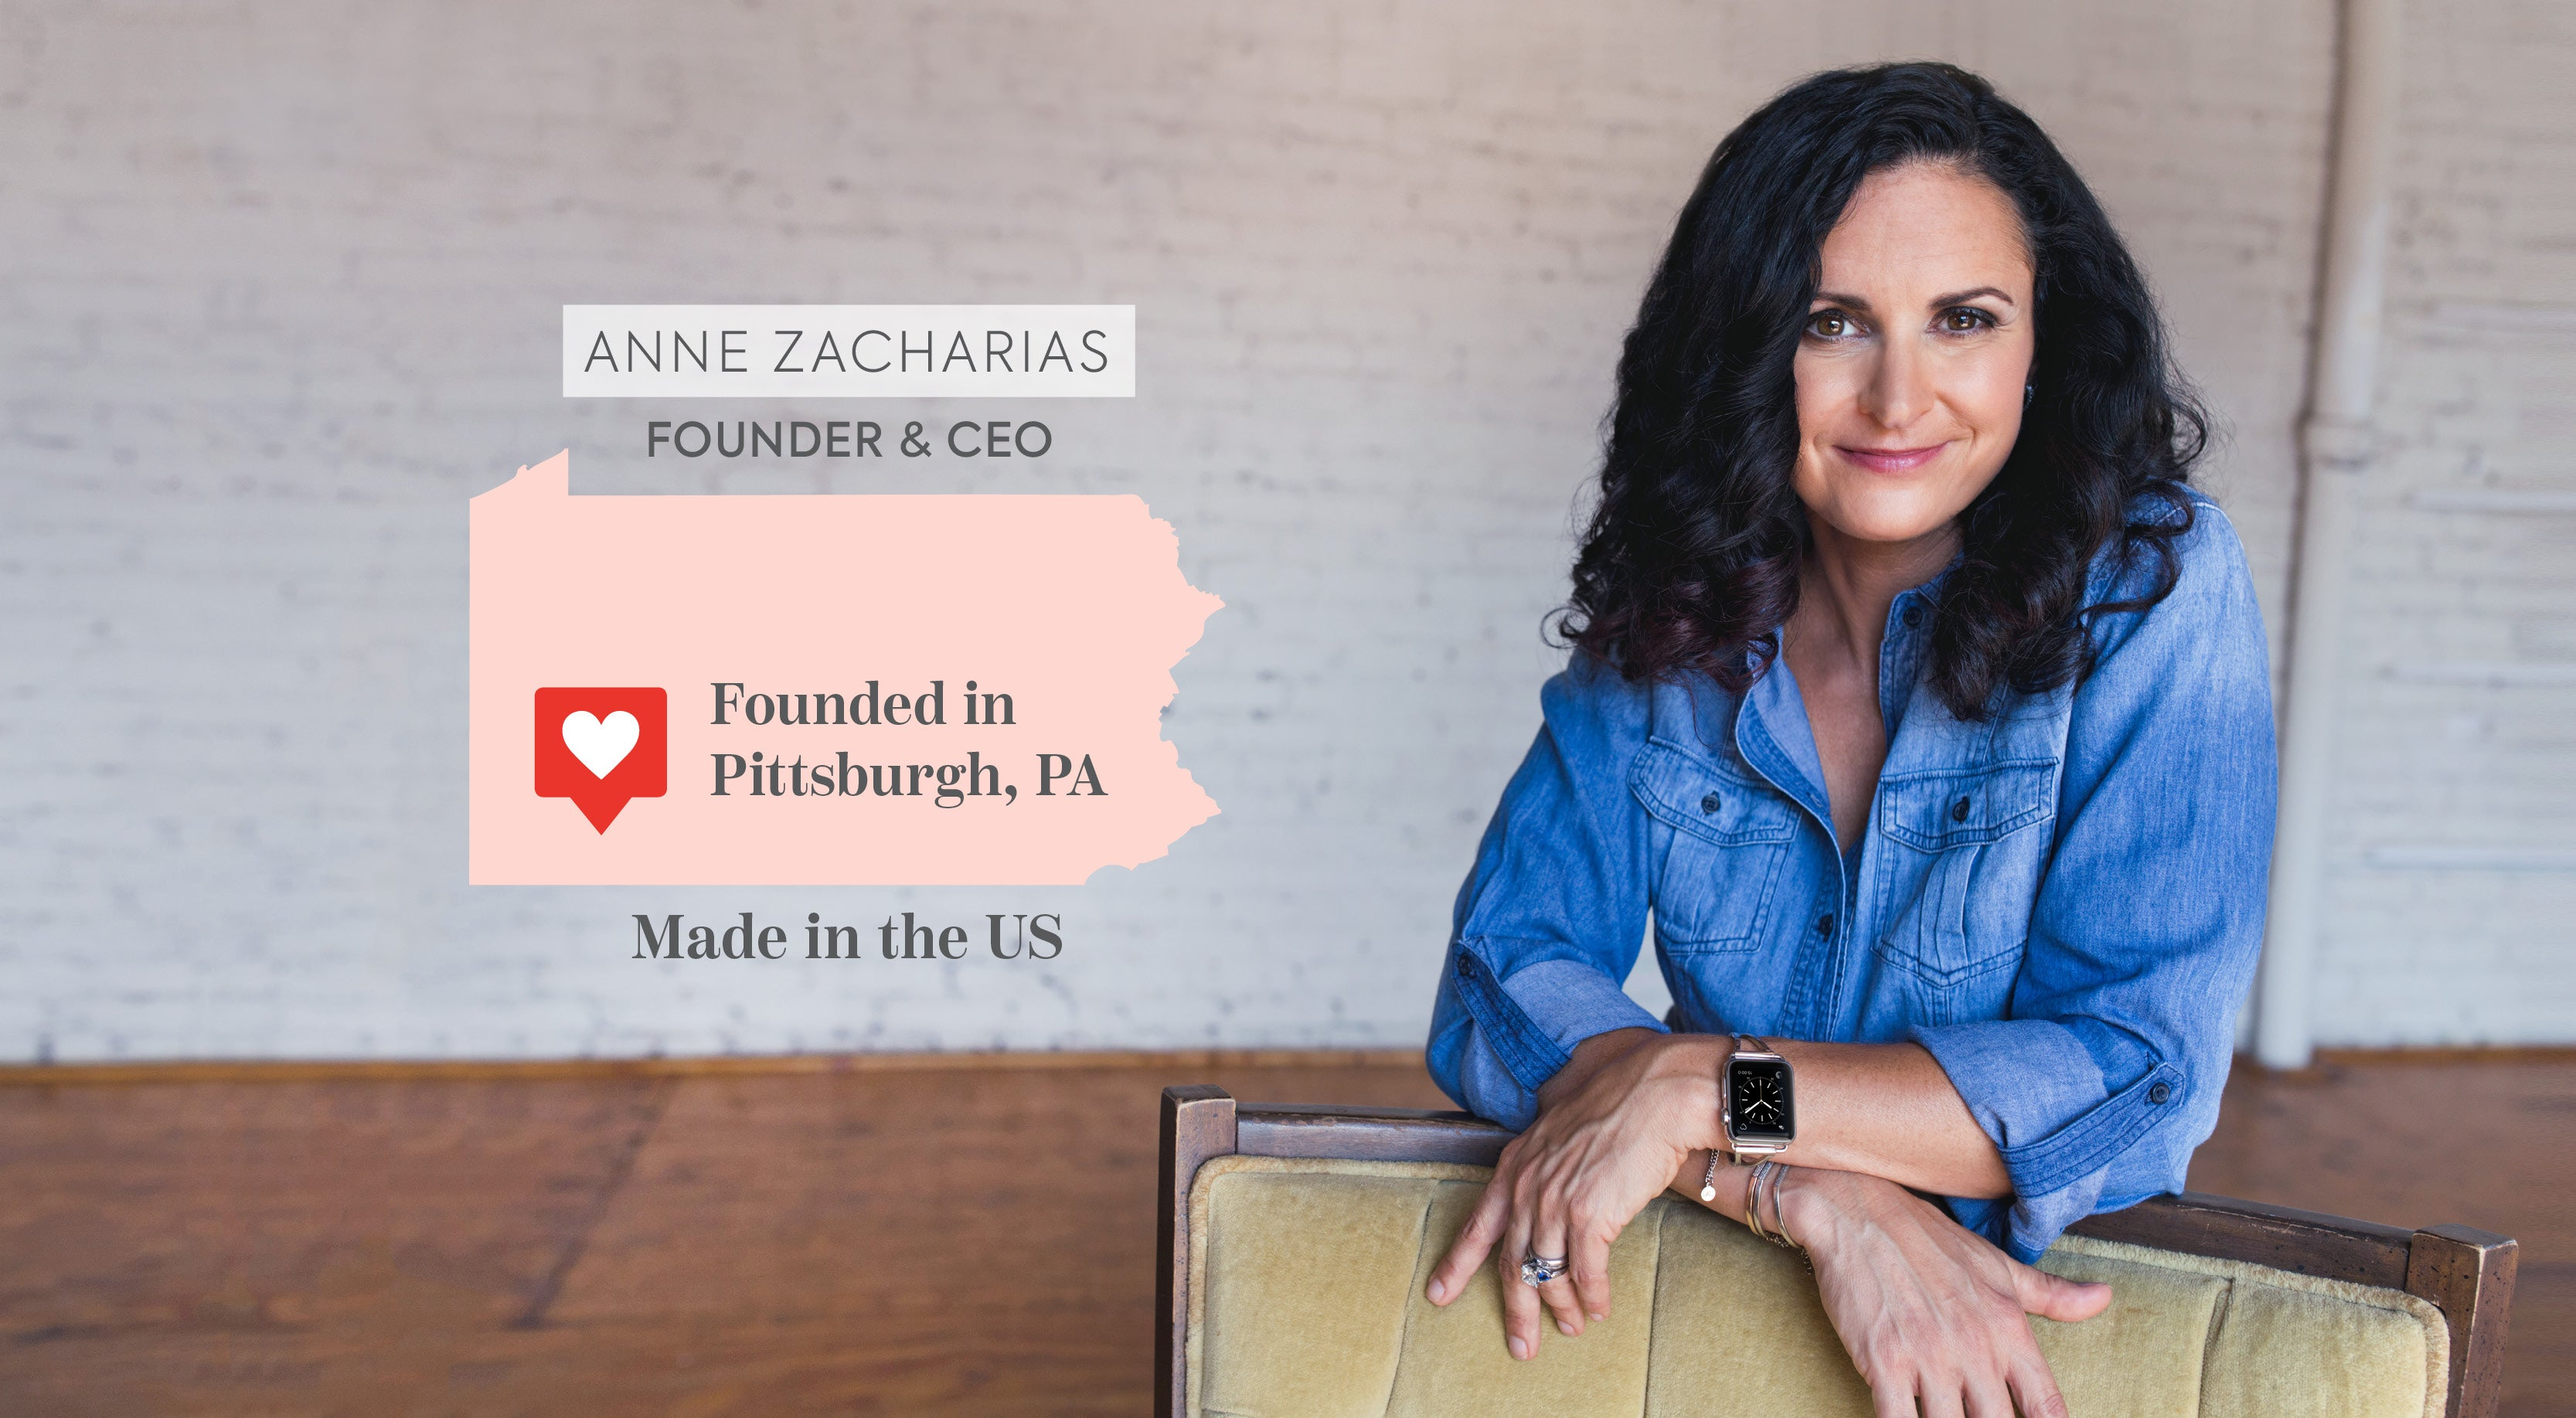 The Ultimate Cuff Apple Watch Jewelry Band Founder Anne Zacharias